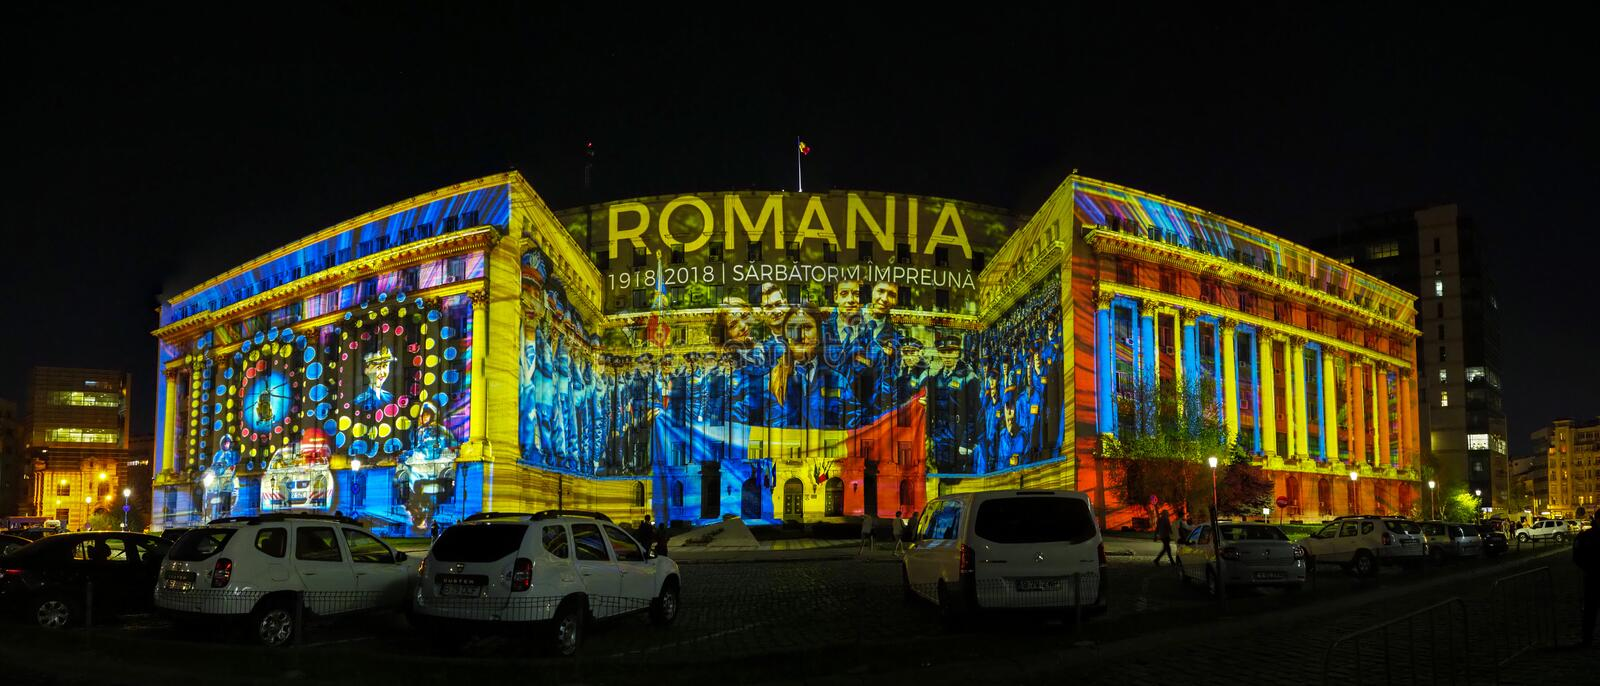 Video mapping on the facade of the Ministry of Internal Affairs - Spotlight festival 2018, Bucharest, Romania. On its fourth edition, Spotlight Festival stock image